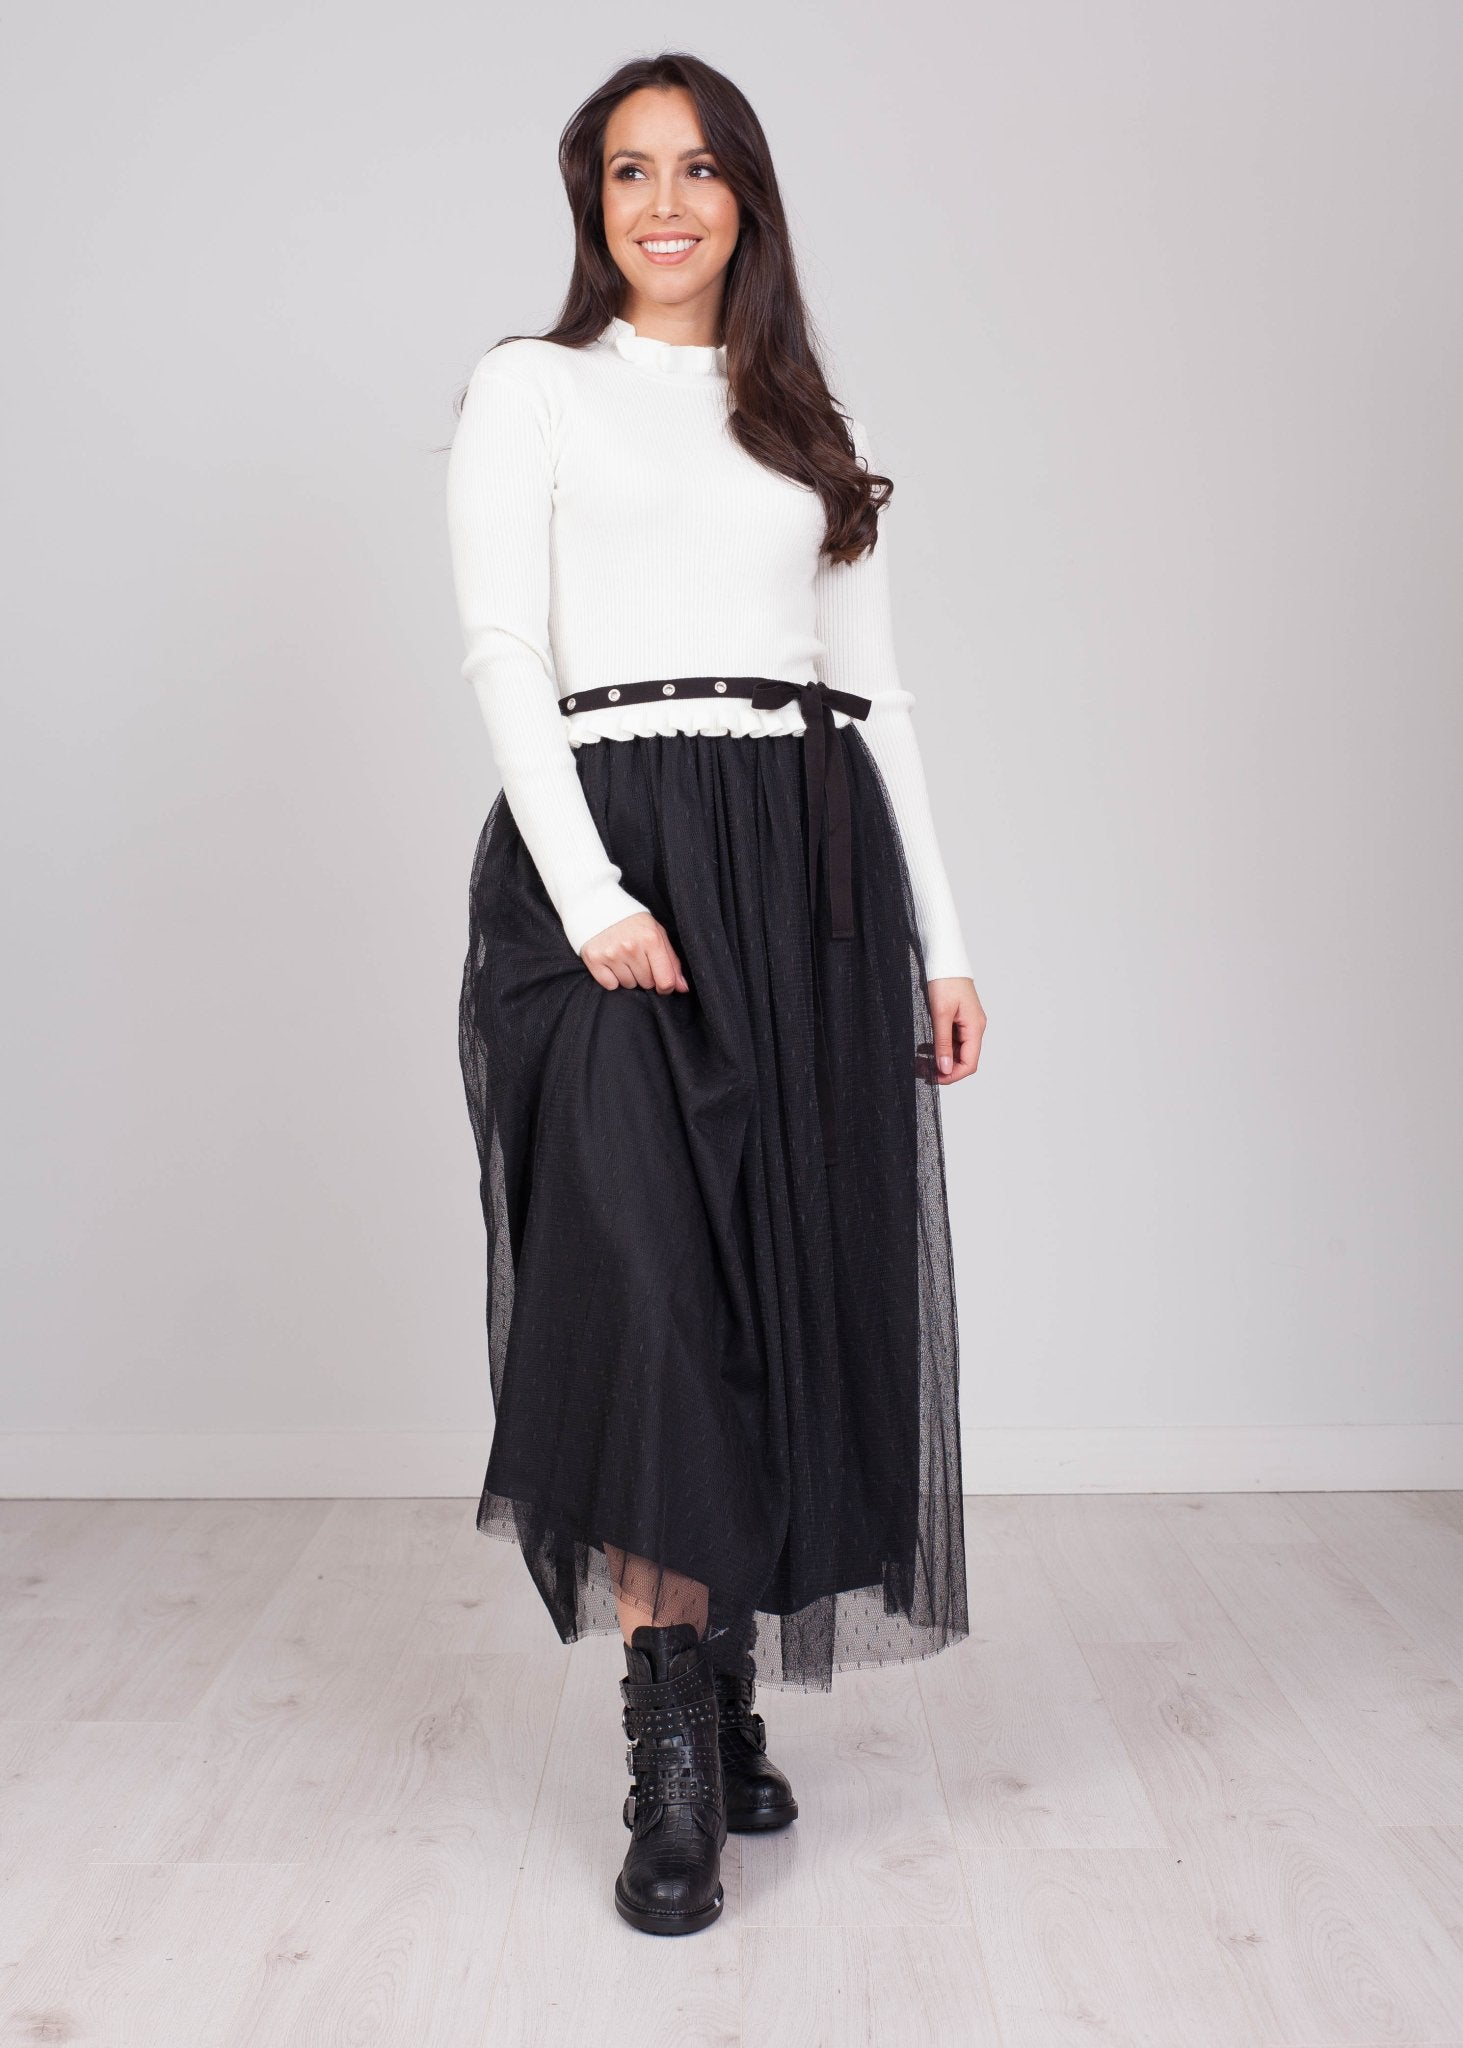 Sophia Cream Sweater Dress With Tulle - The Walk in Wardrobe